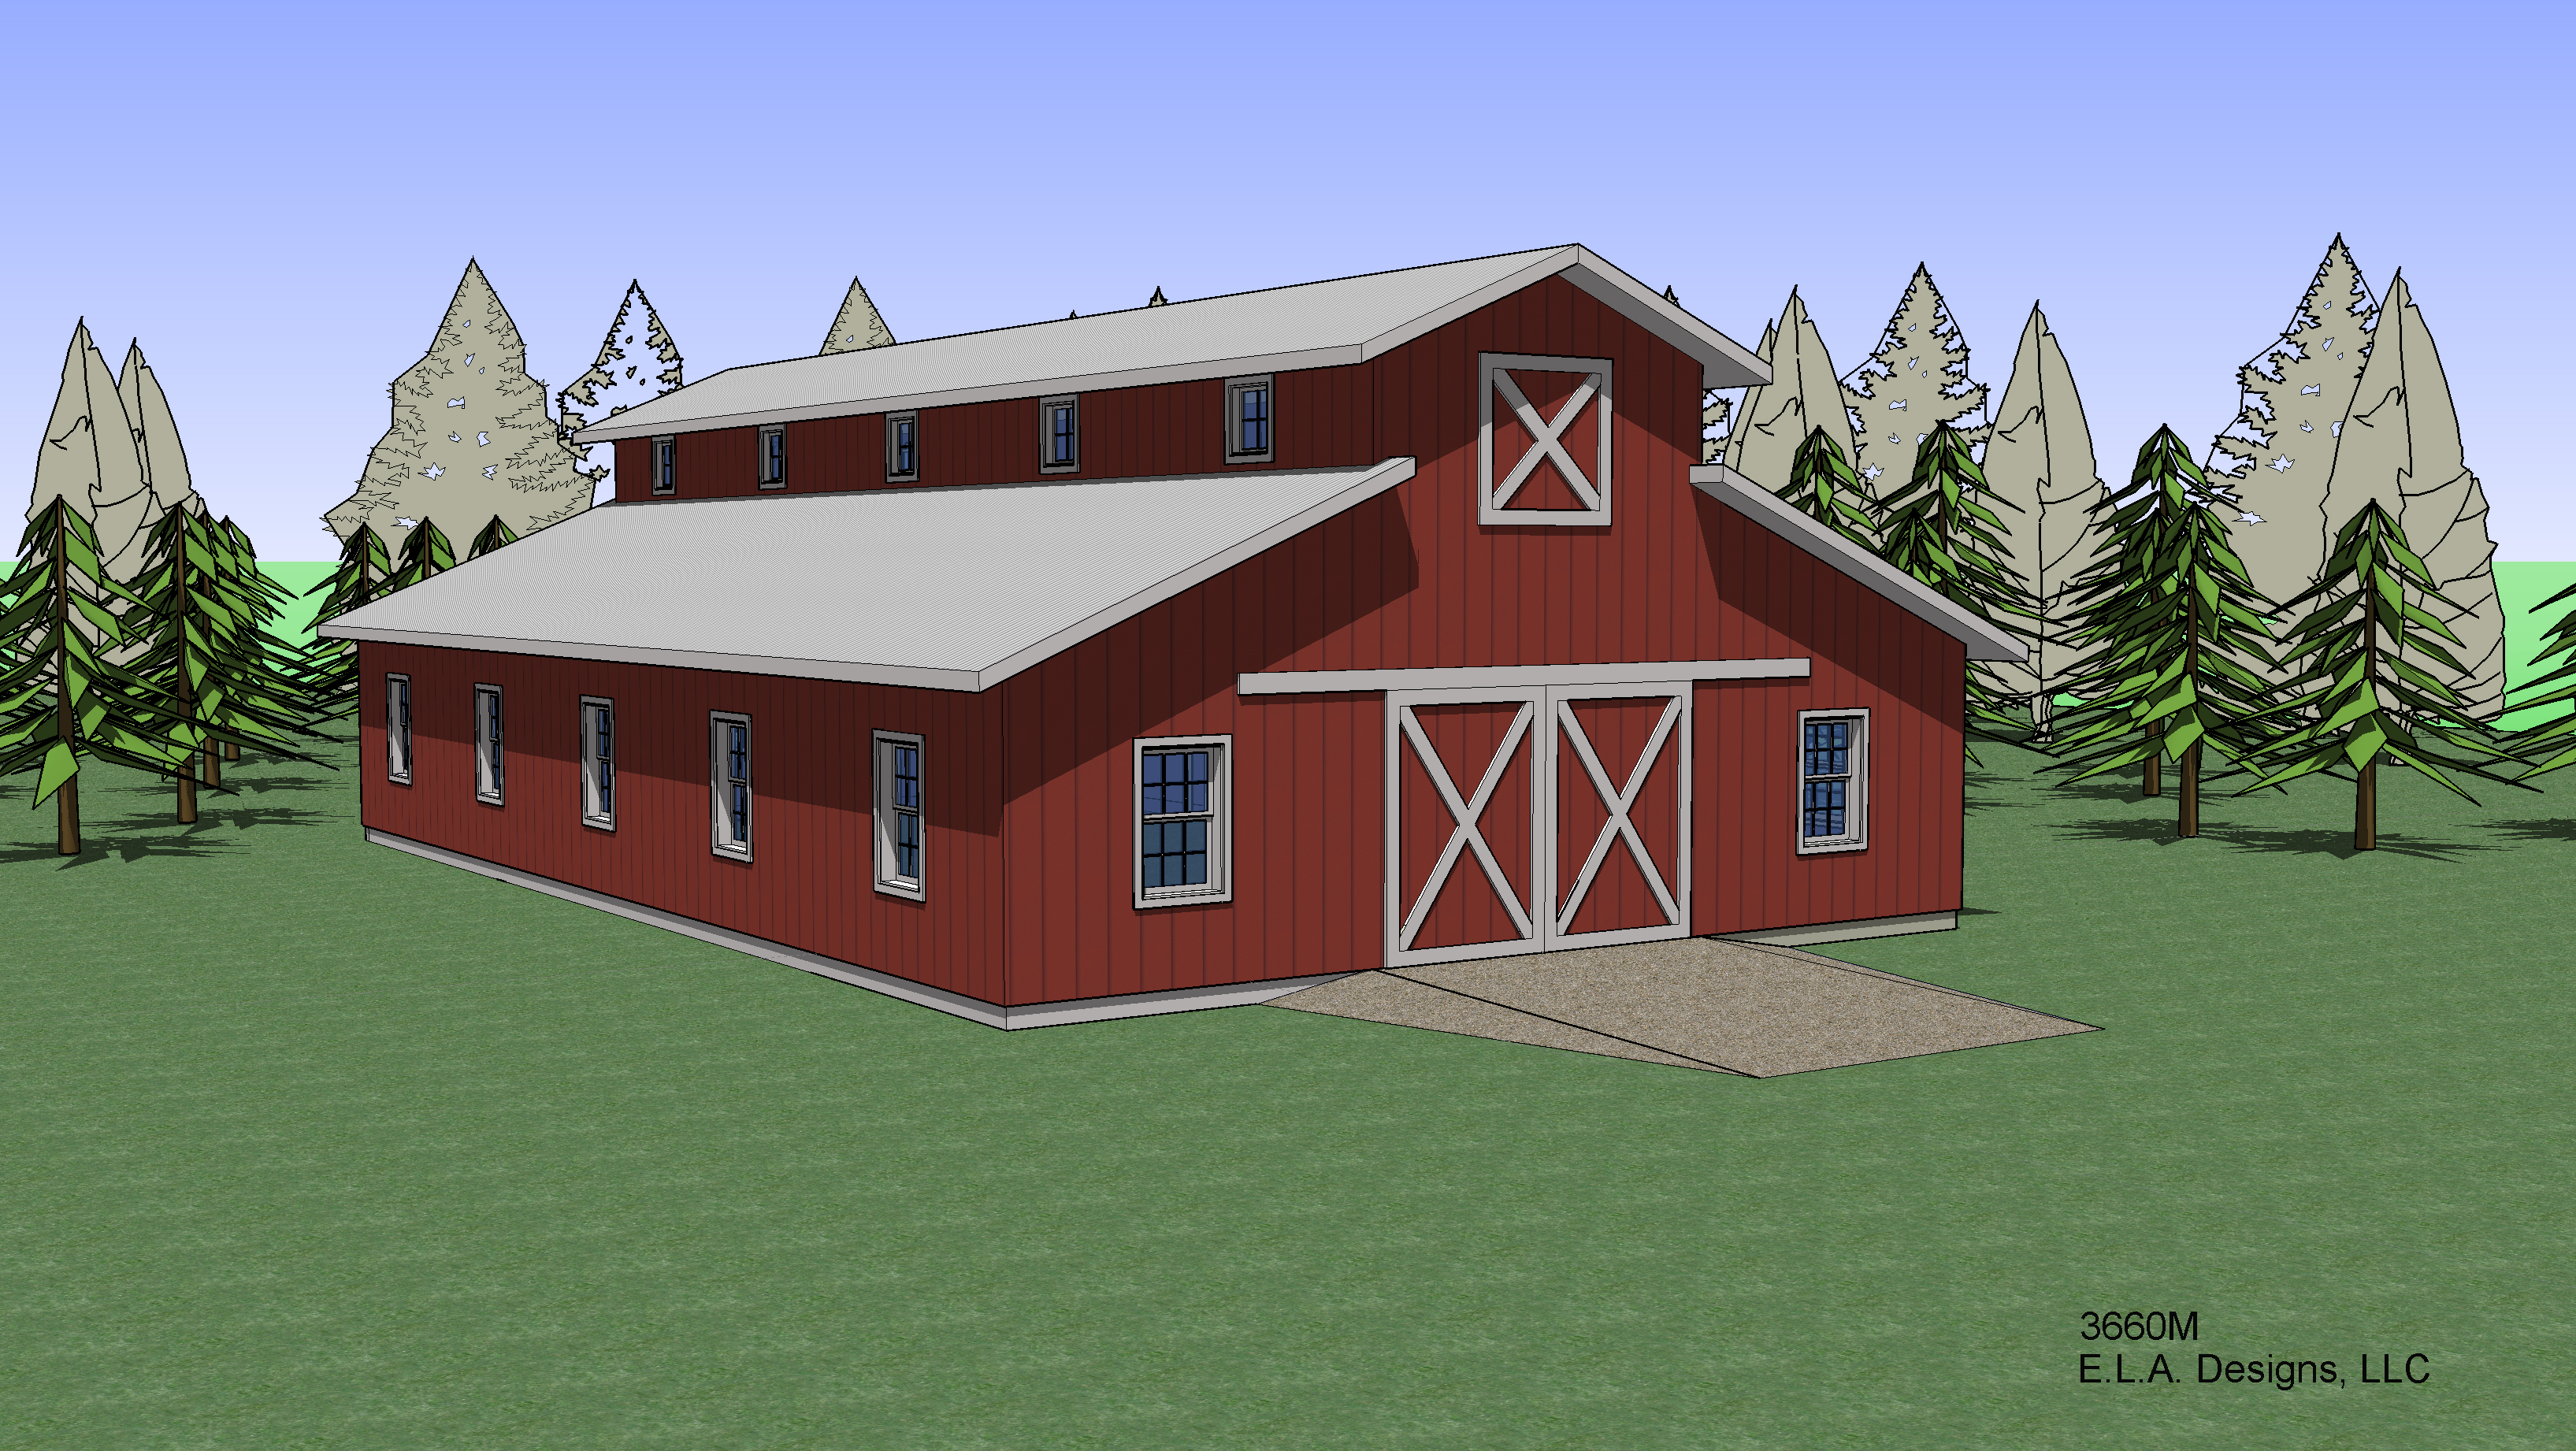 Barn plan 3660m for Barn plans